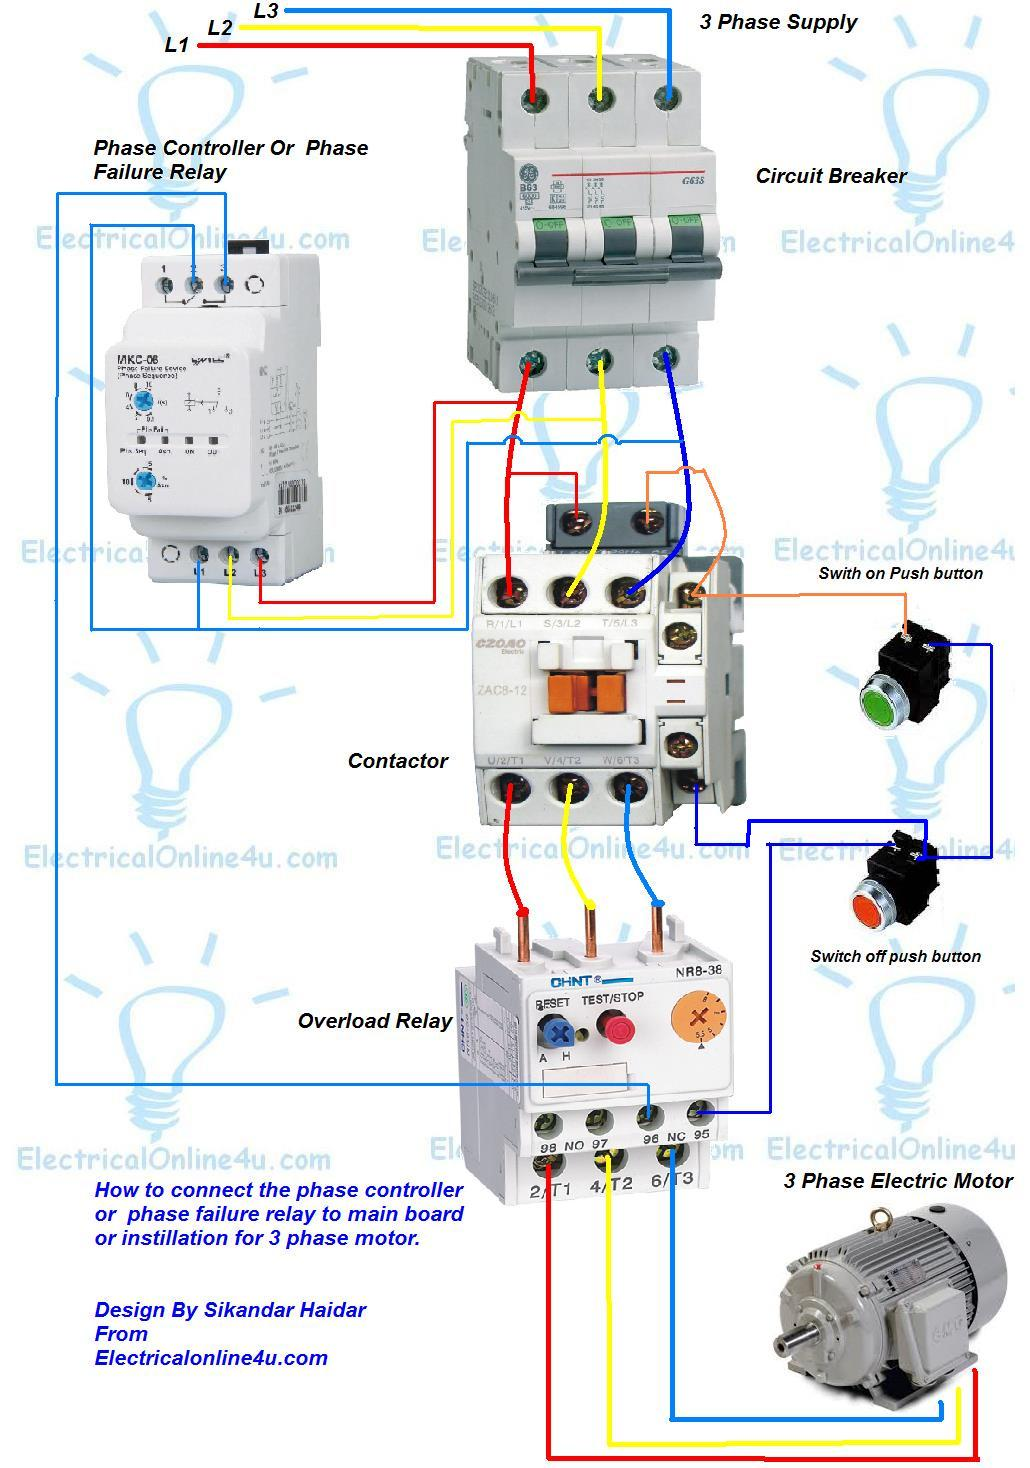 Phase%2Bfailure%2Brelay%2B %2Bphase%2Bcontroller%2Binstilaion%2Bin%2B3%2Bphase%2BMain%2Bboard%2Bor%2Bfor%2B3%2Bphase%2Bmotor phase controller wiring phase failure relay diagram electrical electrical control wiring diagrams at mr168.co